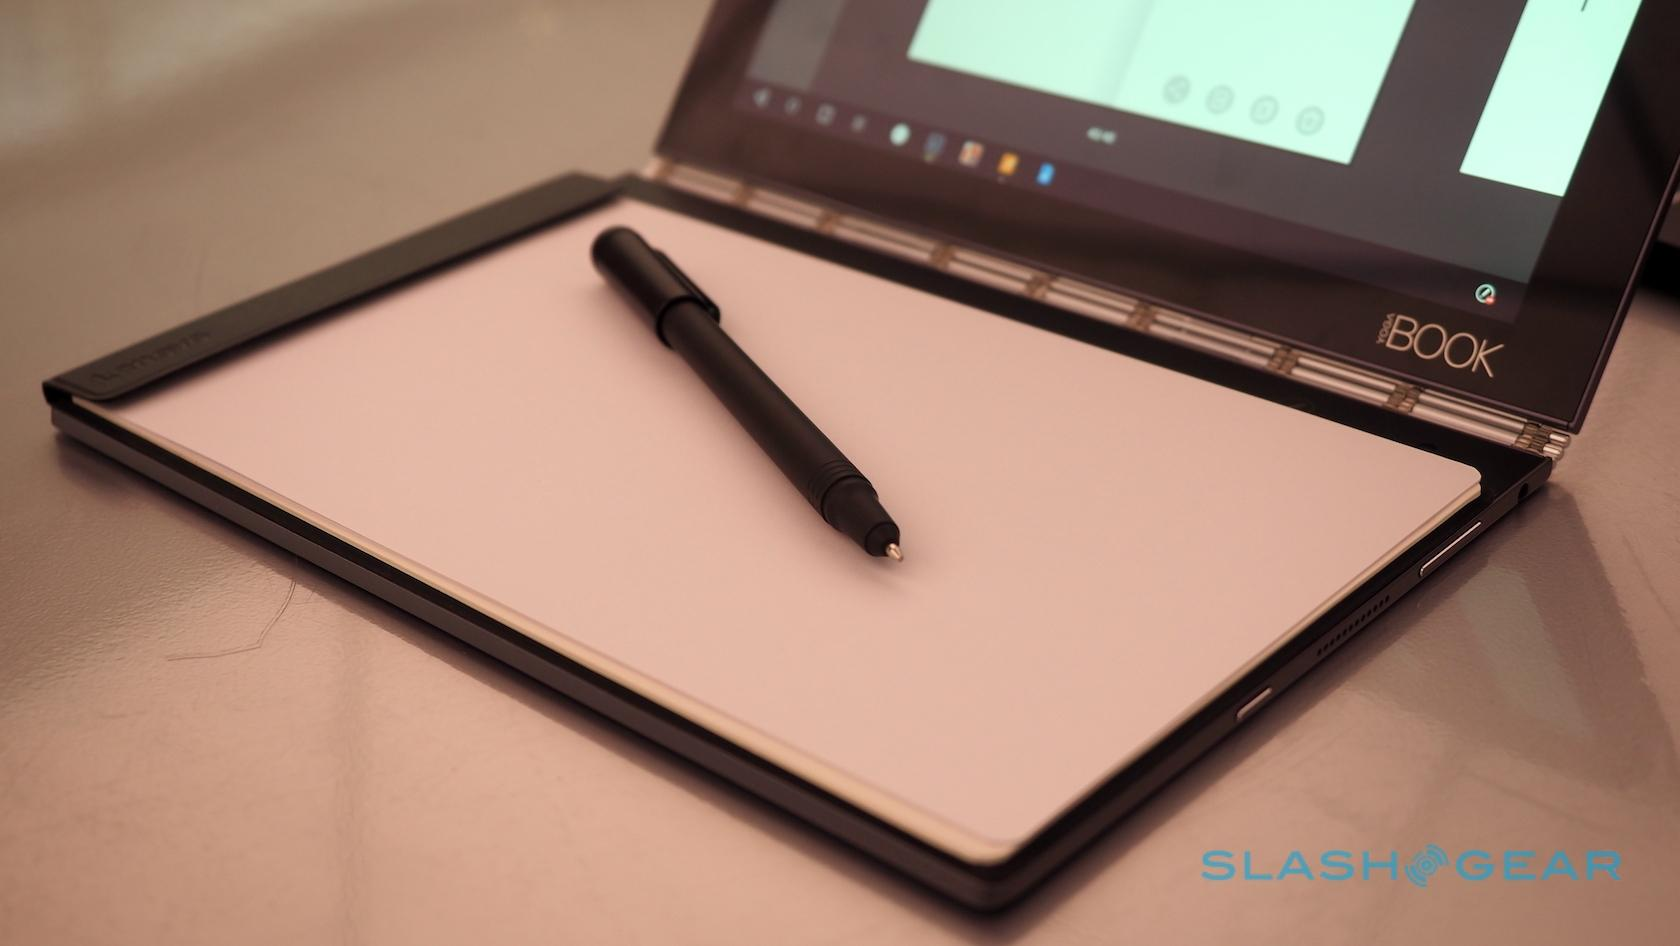 Lenovo Yoga Book hands-on: 2-in-1 ultraportable blends Wacom and